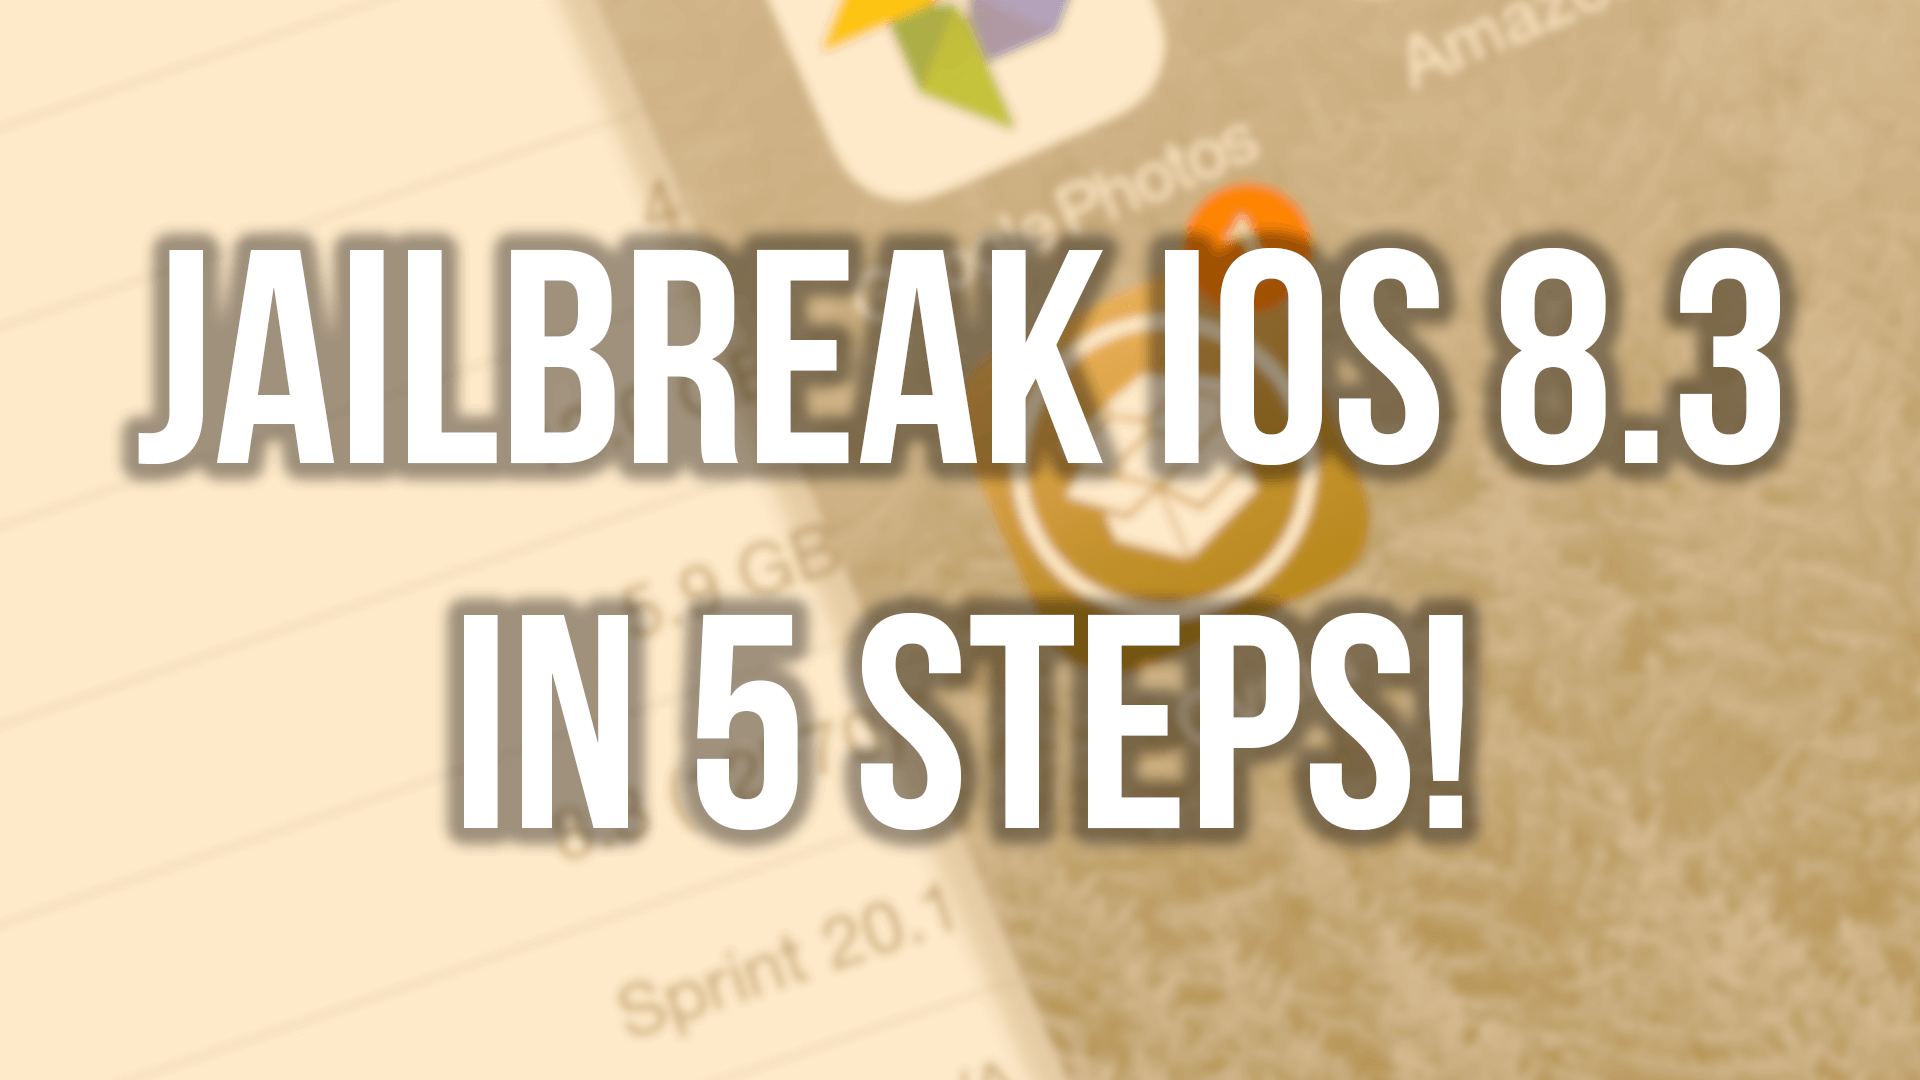 Jailbreak iOS 8.3 in 5 Simple steps!